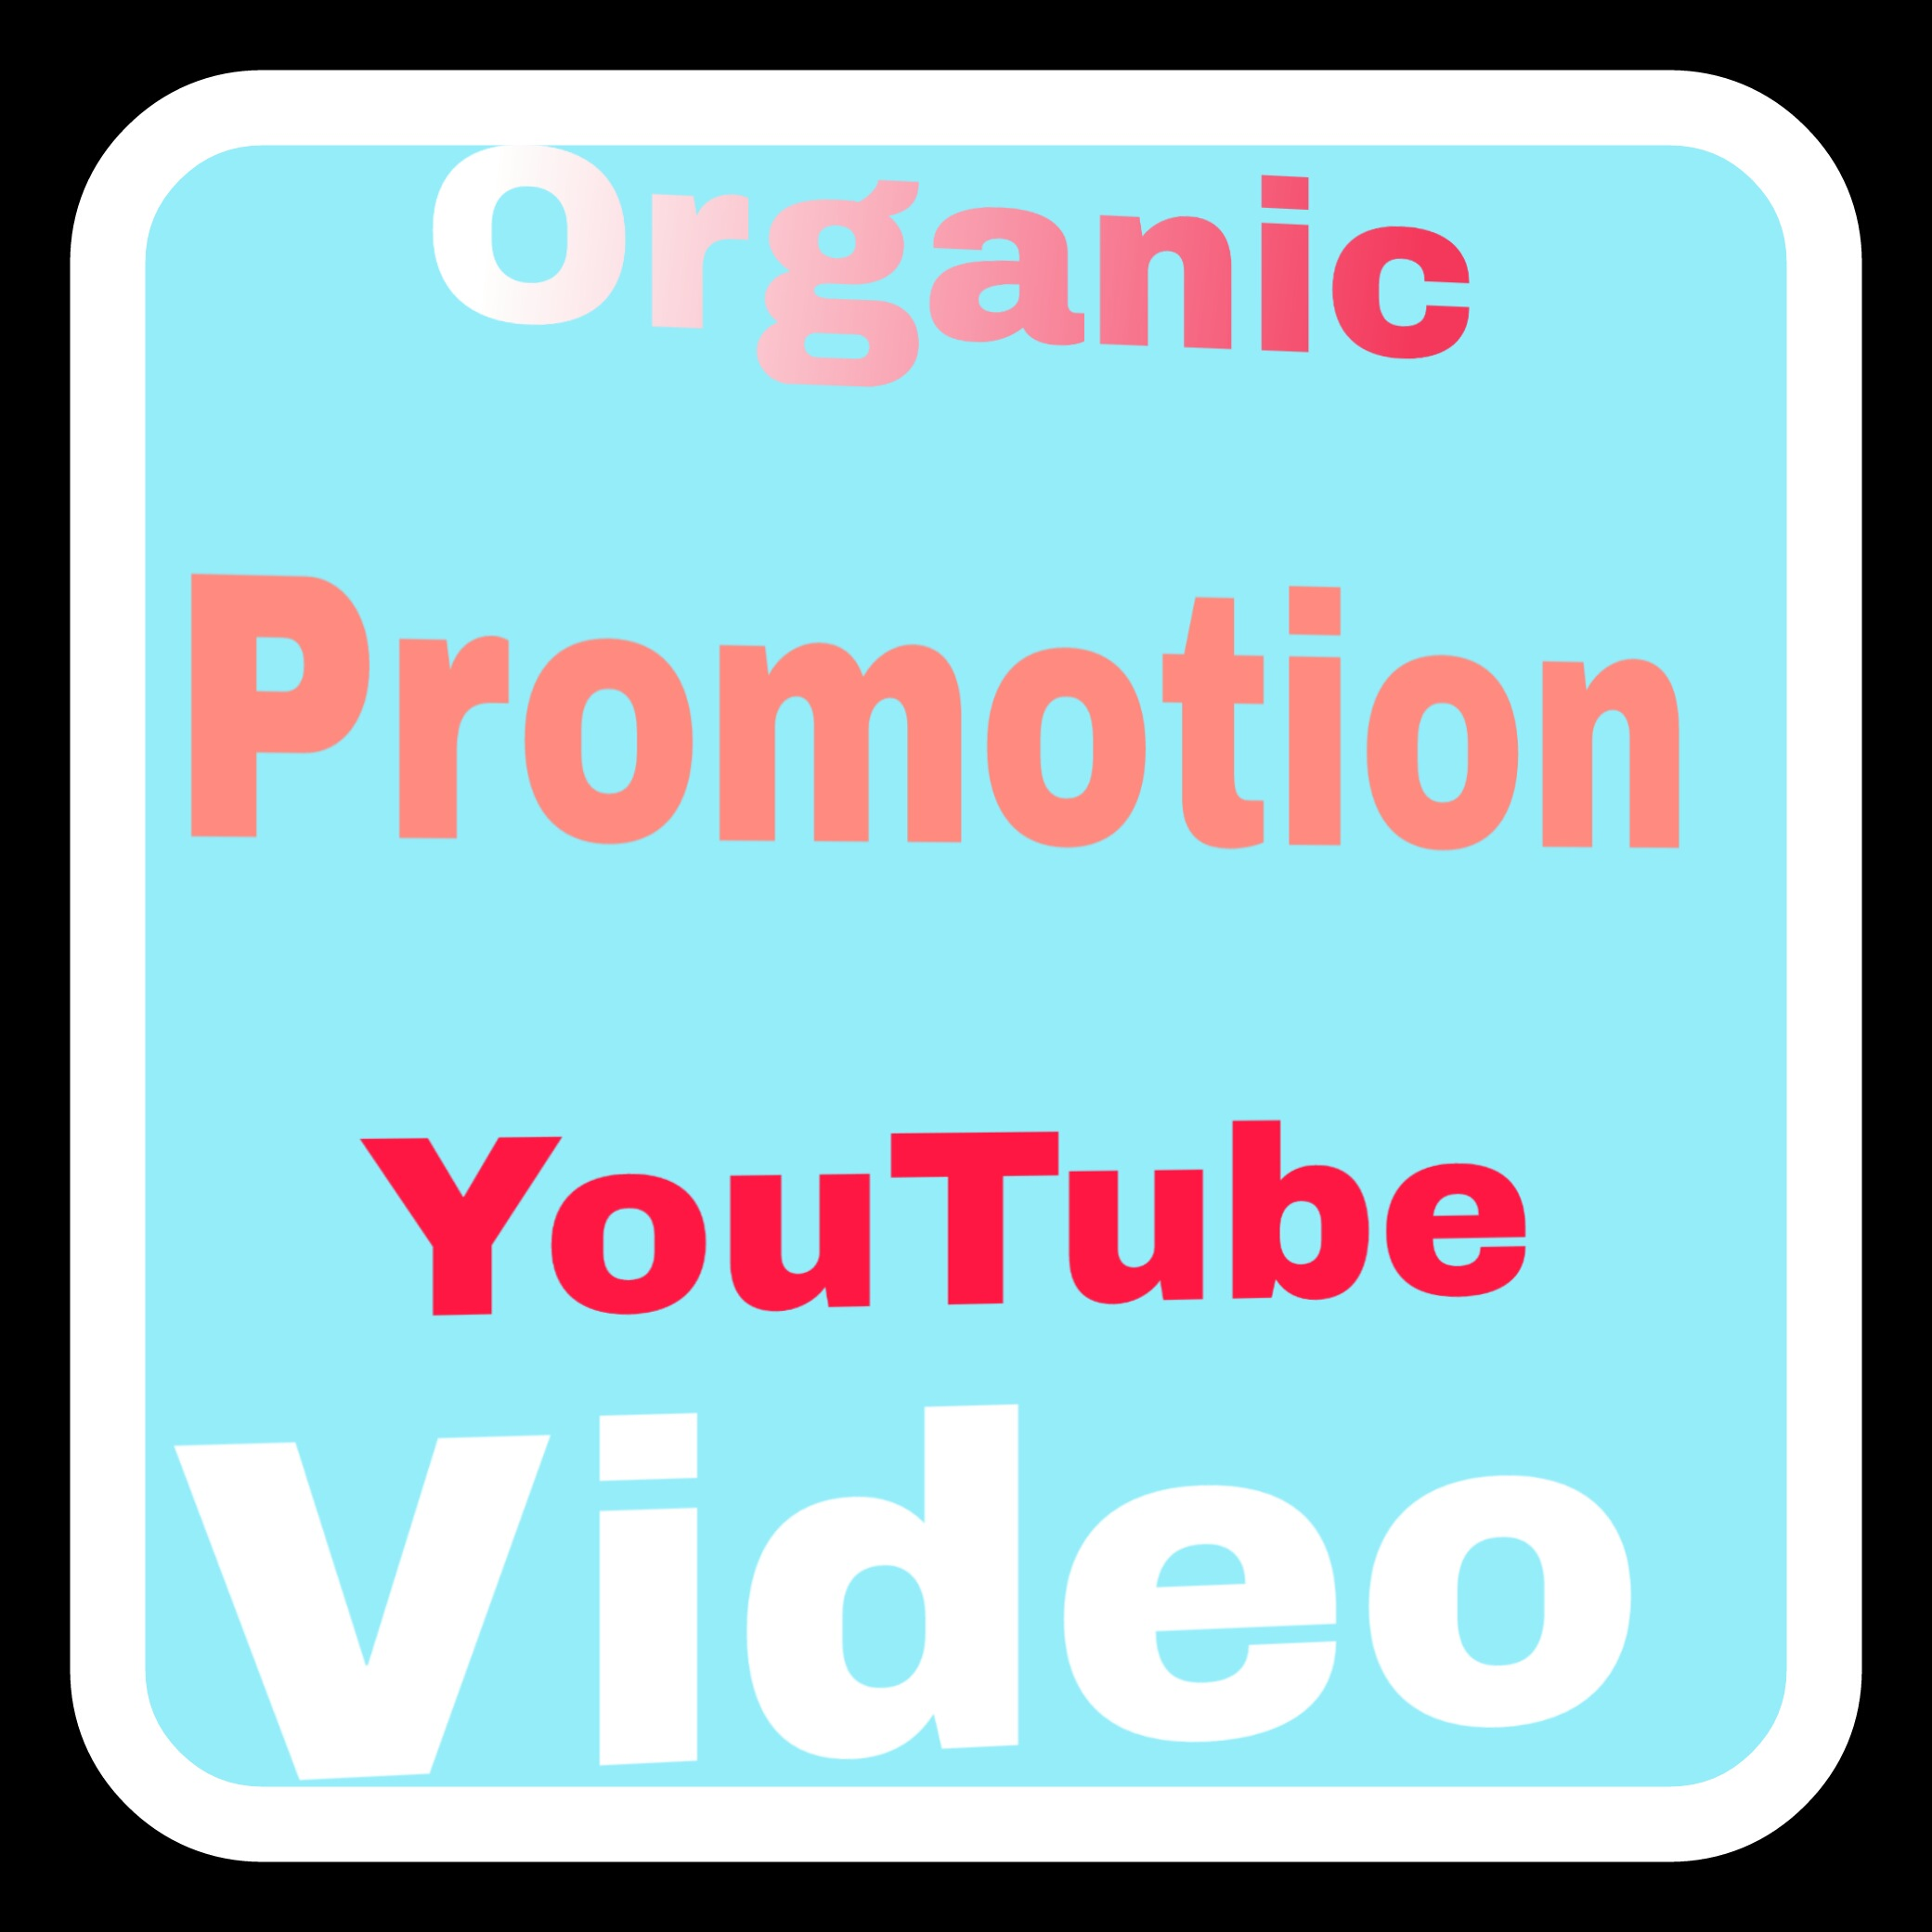 Instant viral your video by YouTube promotion and marketing